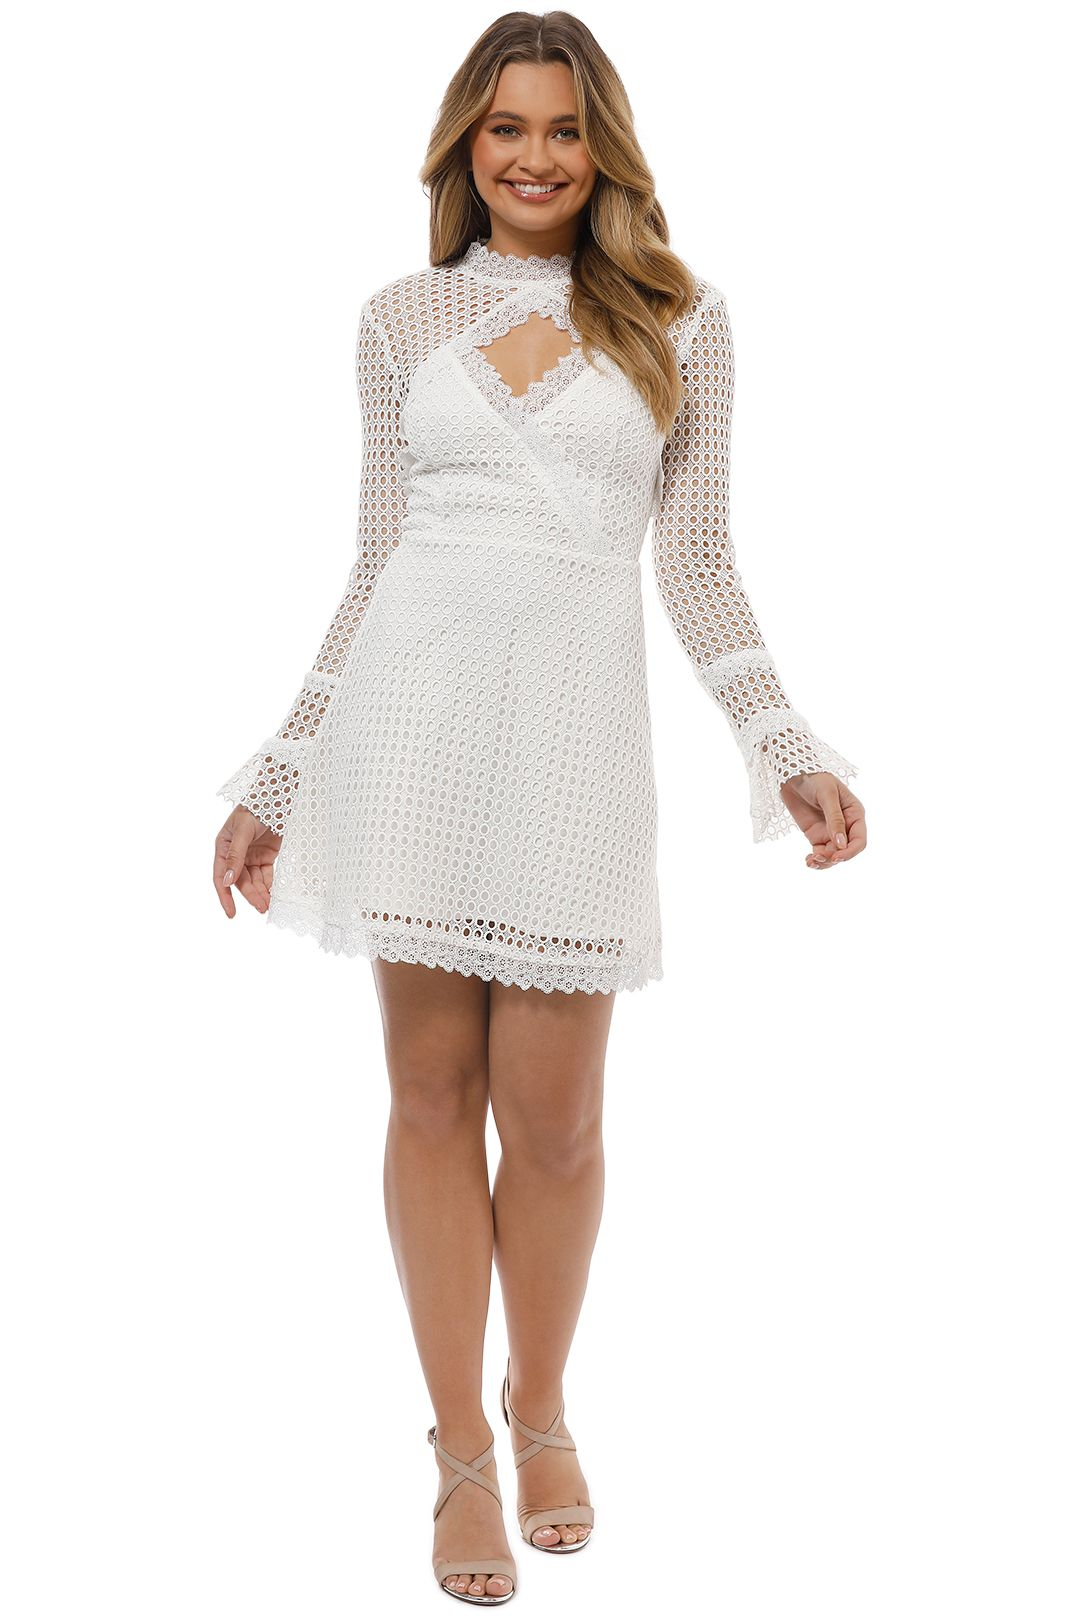 Pasduchas - Reign Dress - Ivory - Front